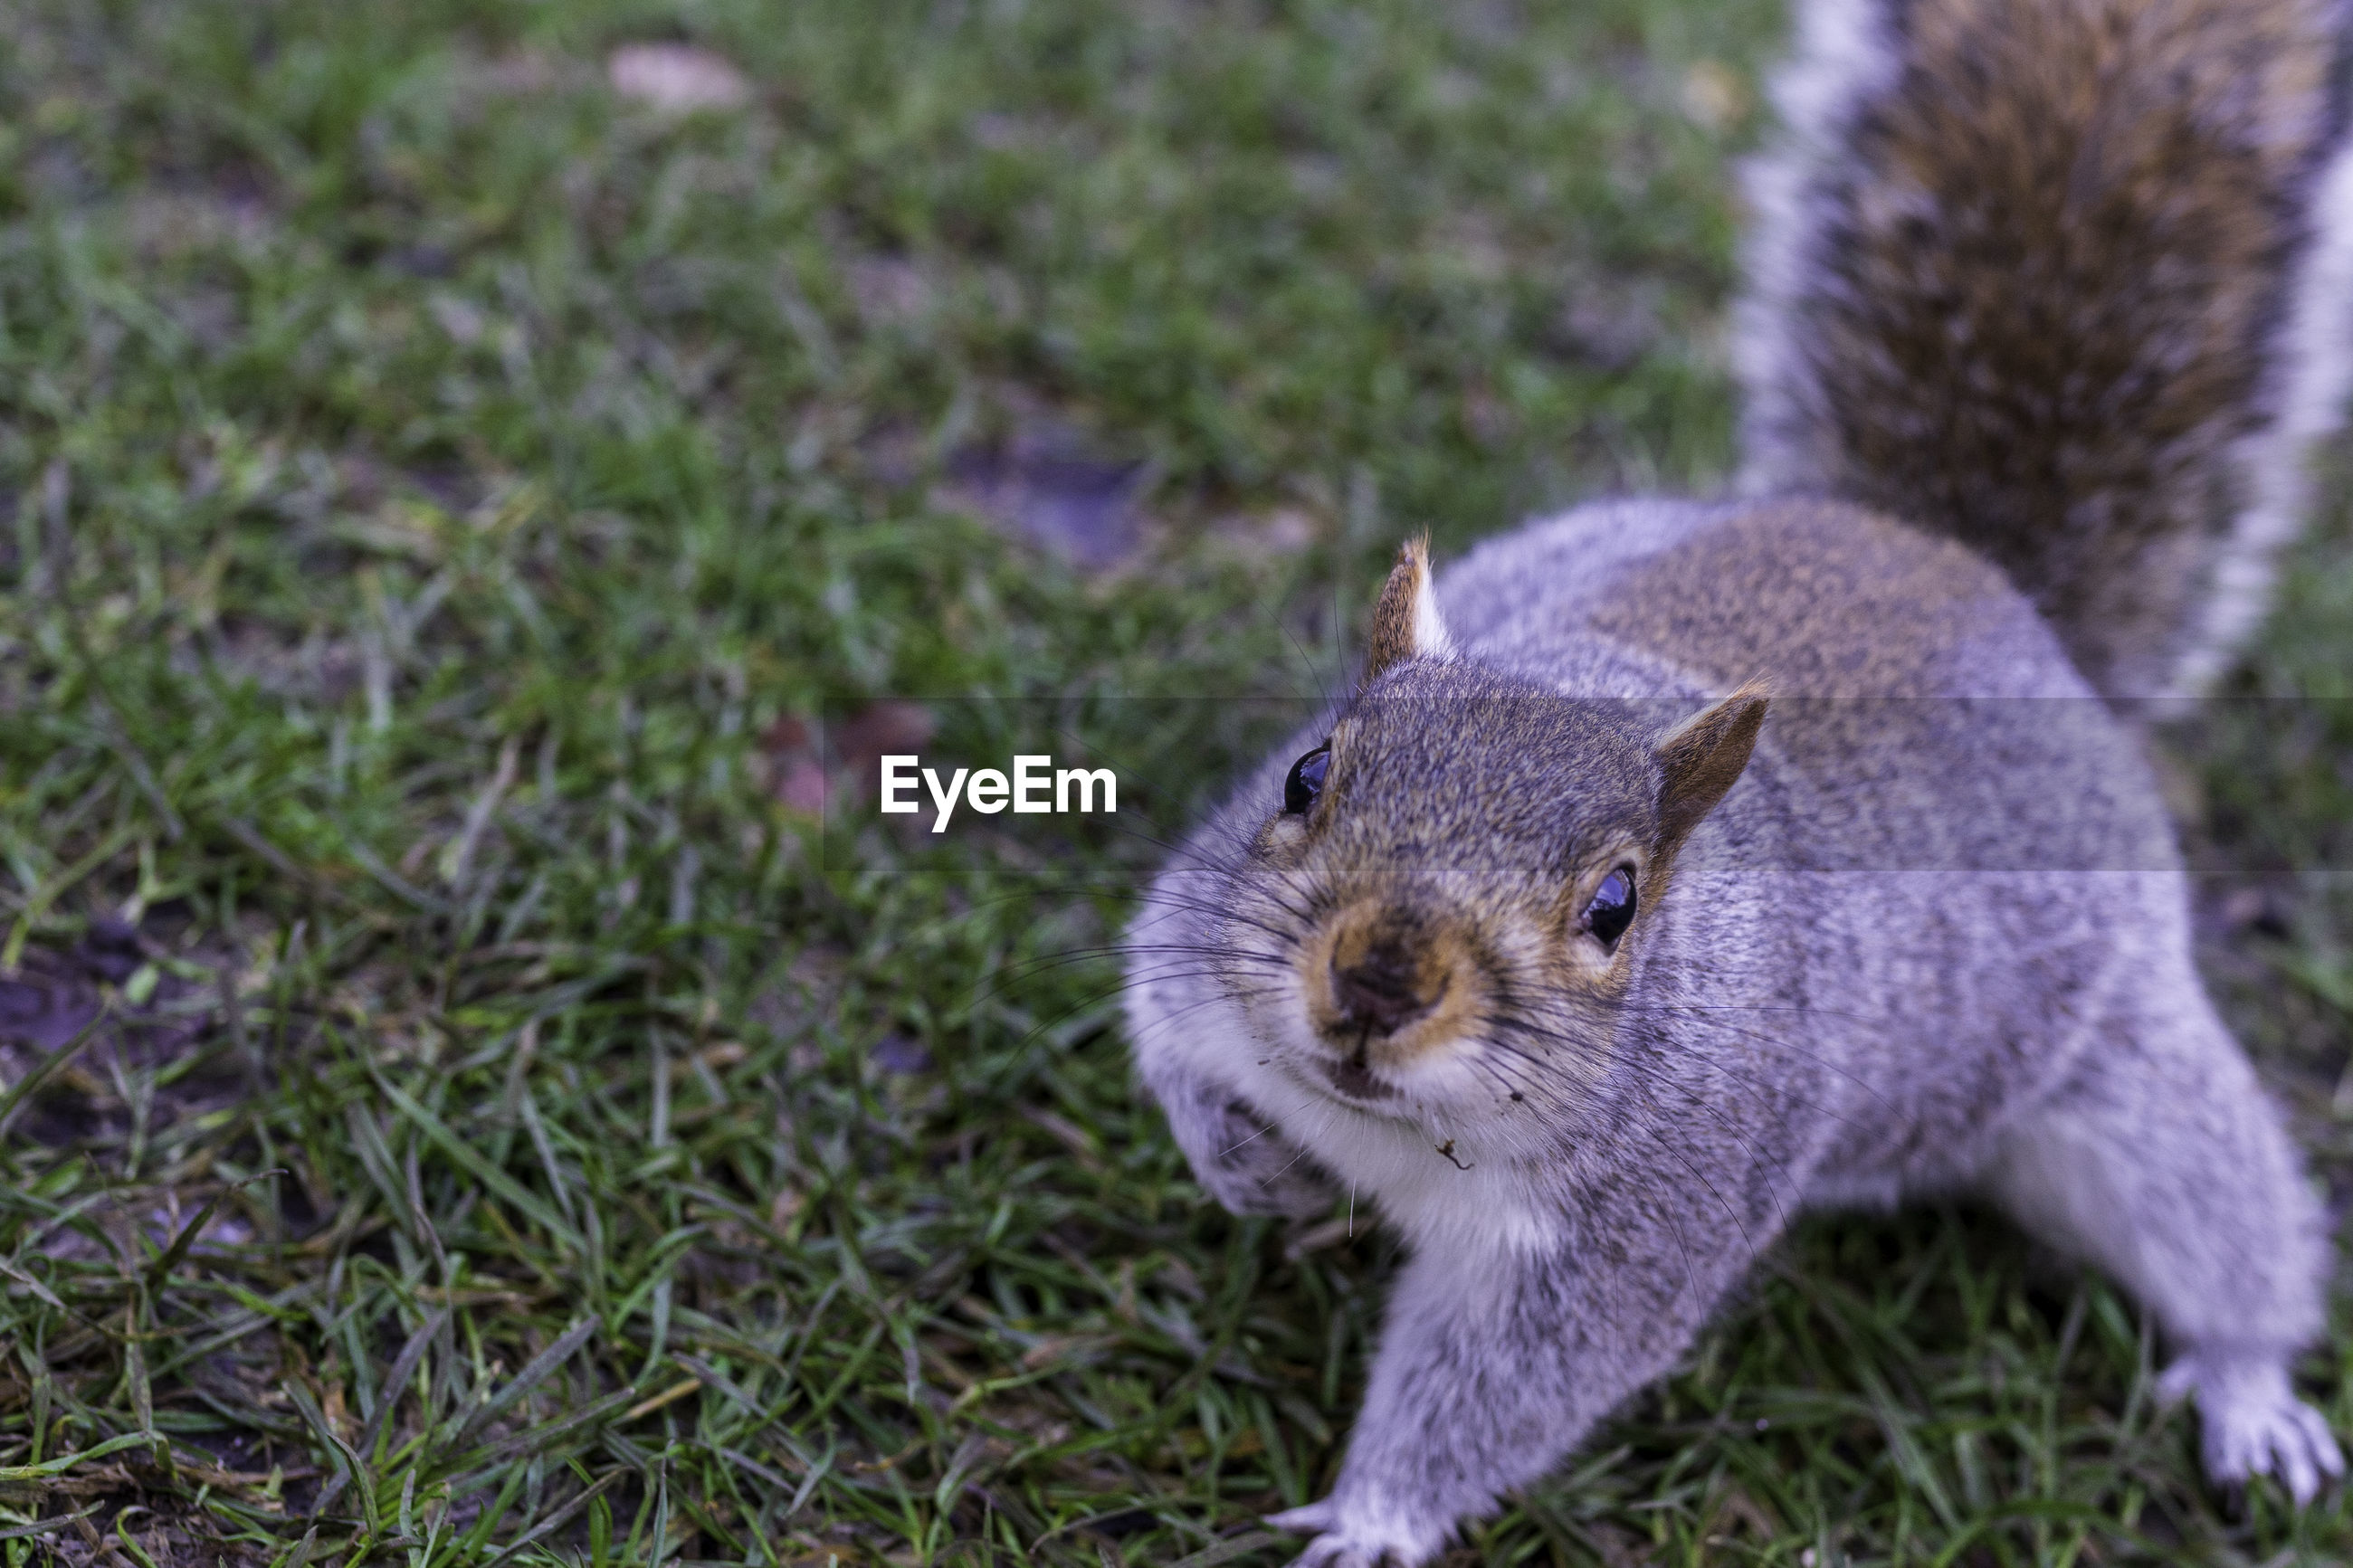 Close-up portrait of squirrel sneaking towards camera